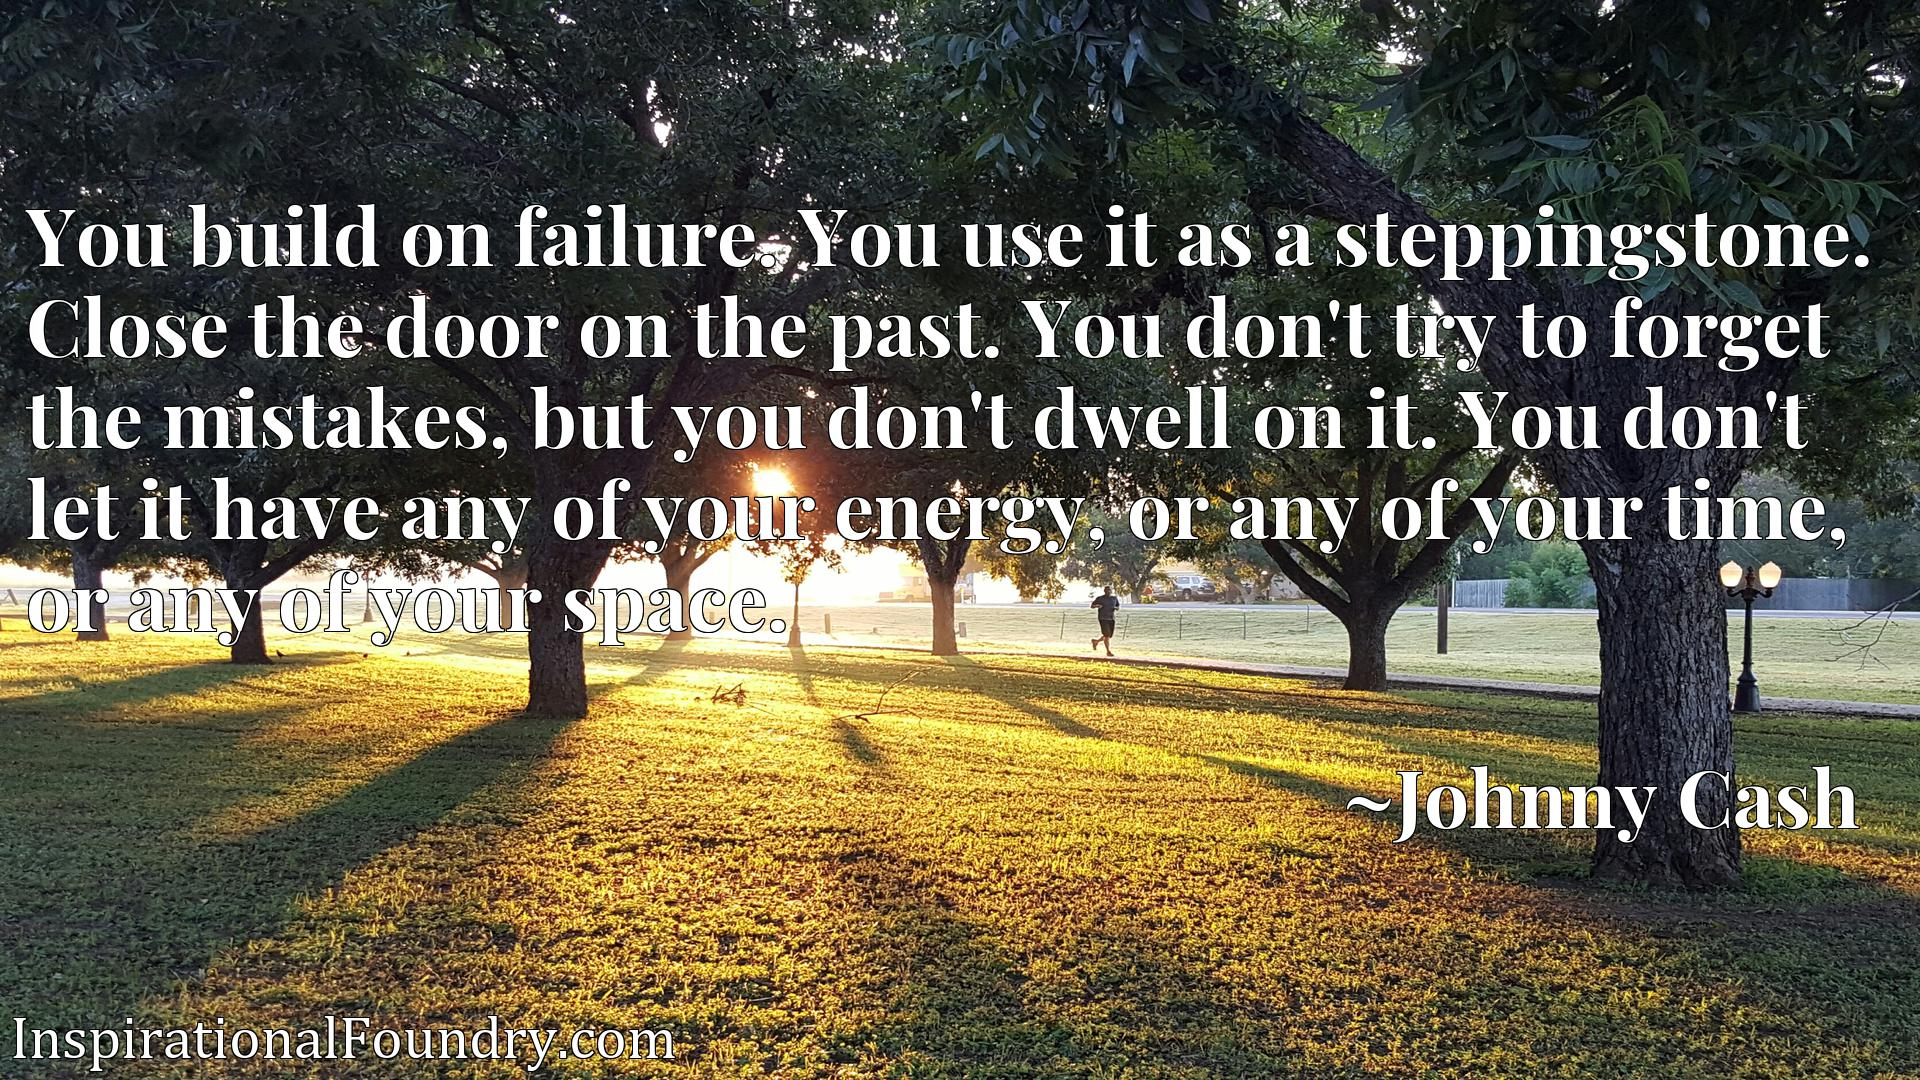 You build on failure. You use it as a steppingstone. Close the door on the past. You don't try to forget the mistakes, but you don't dwell on it. You don't let it have any of your energy, or any of your time, or any of your space.